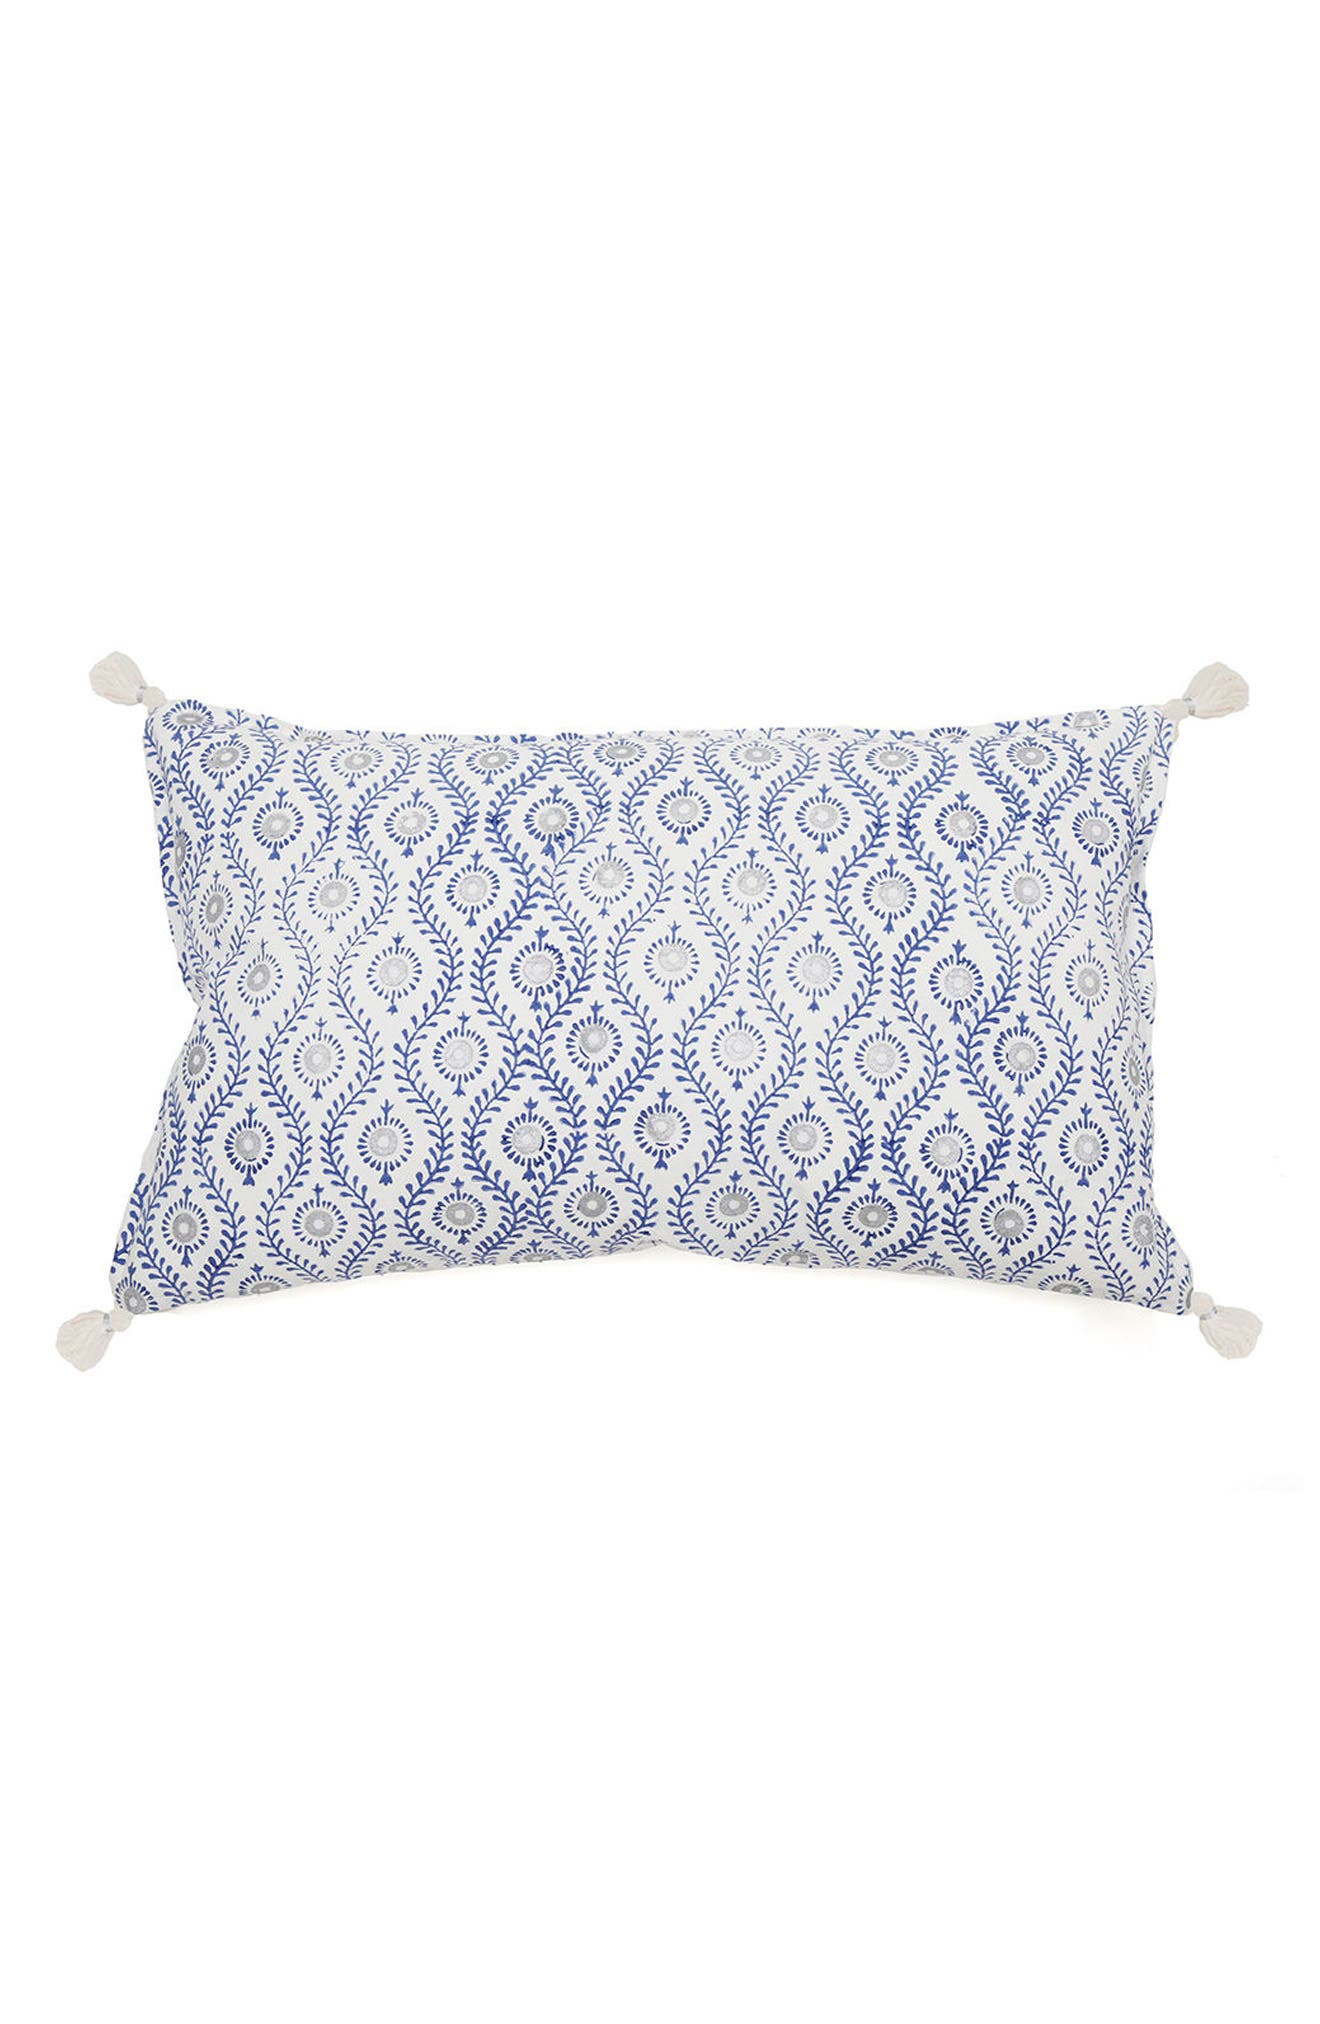 Pom Pom at Home Dali Accent Pillow